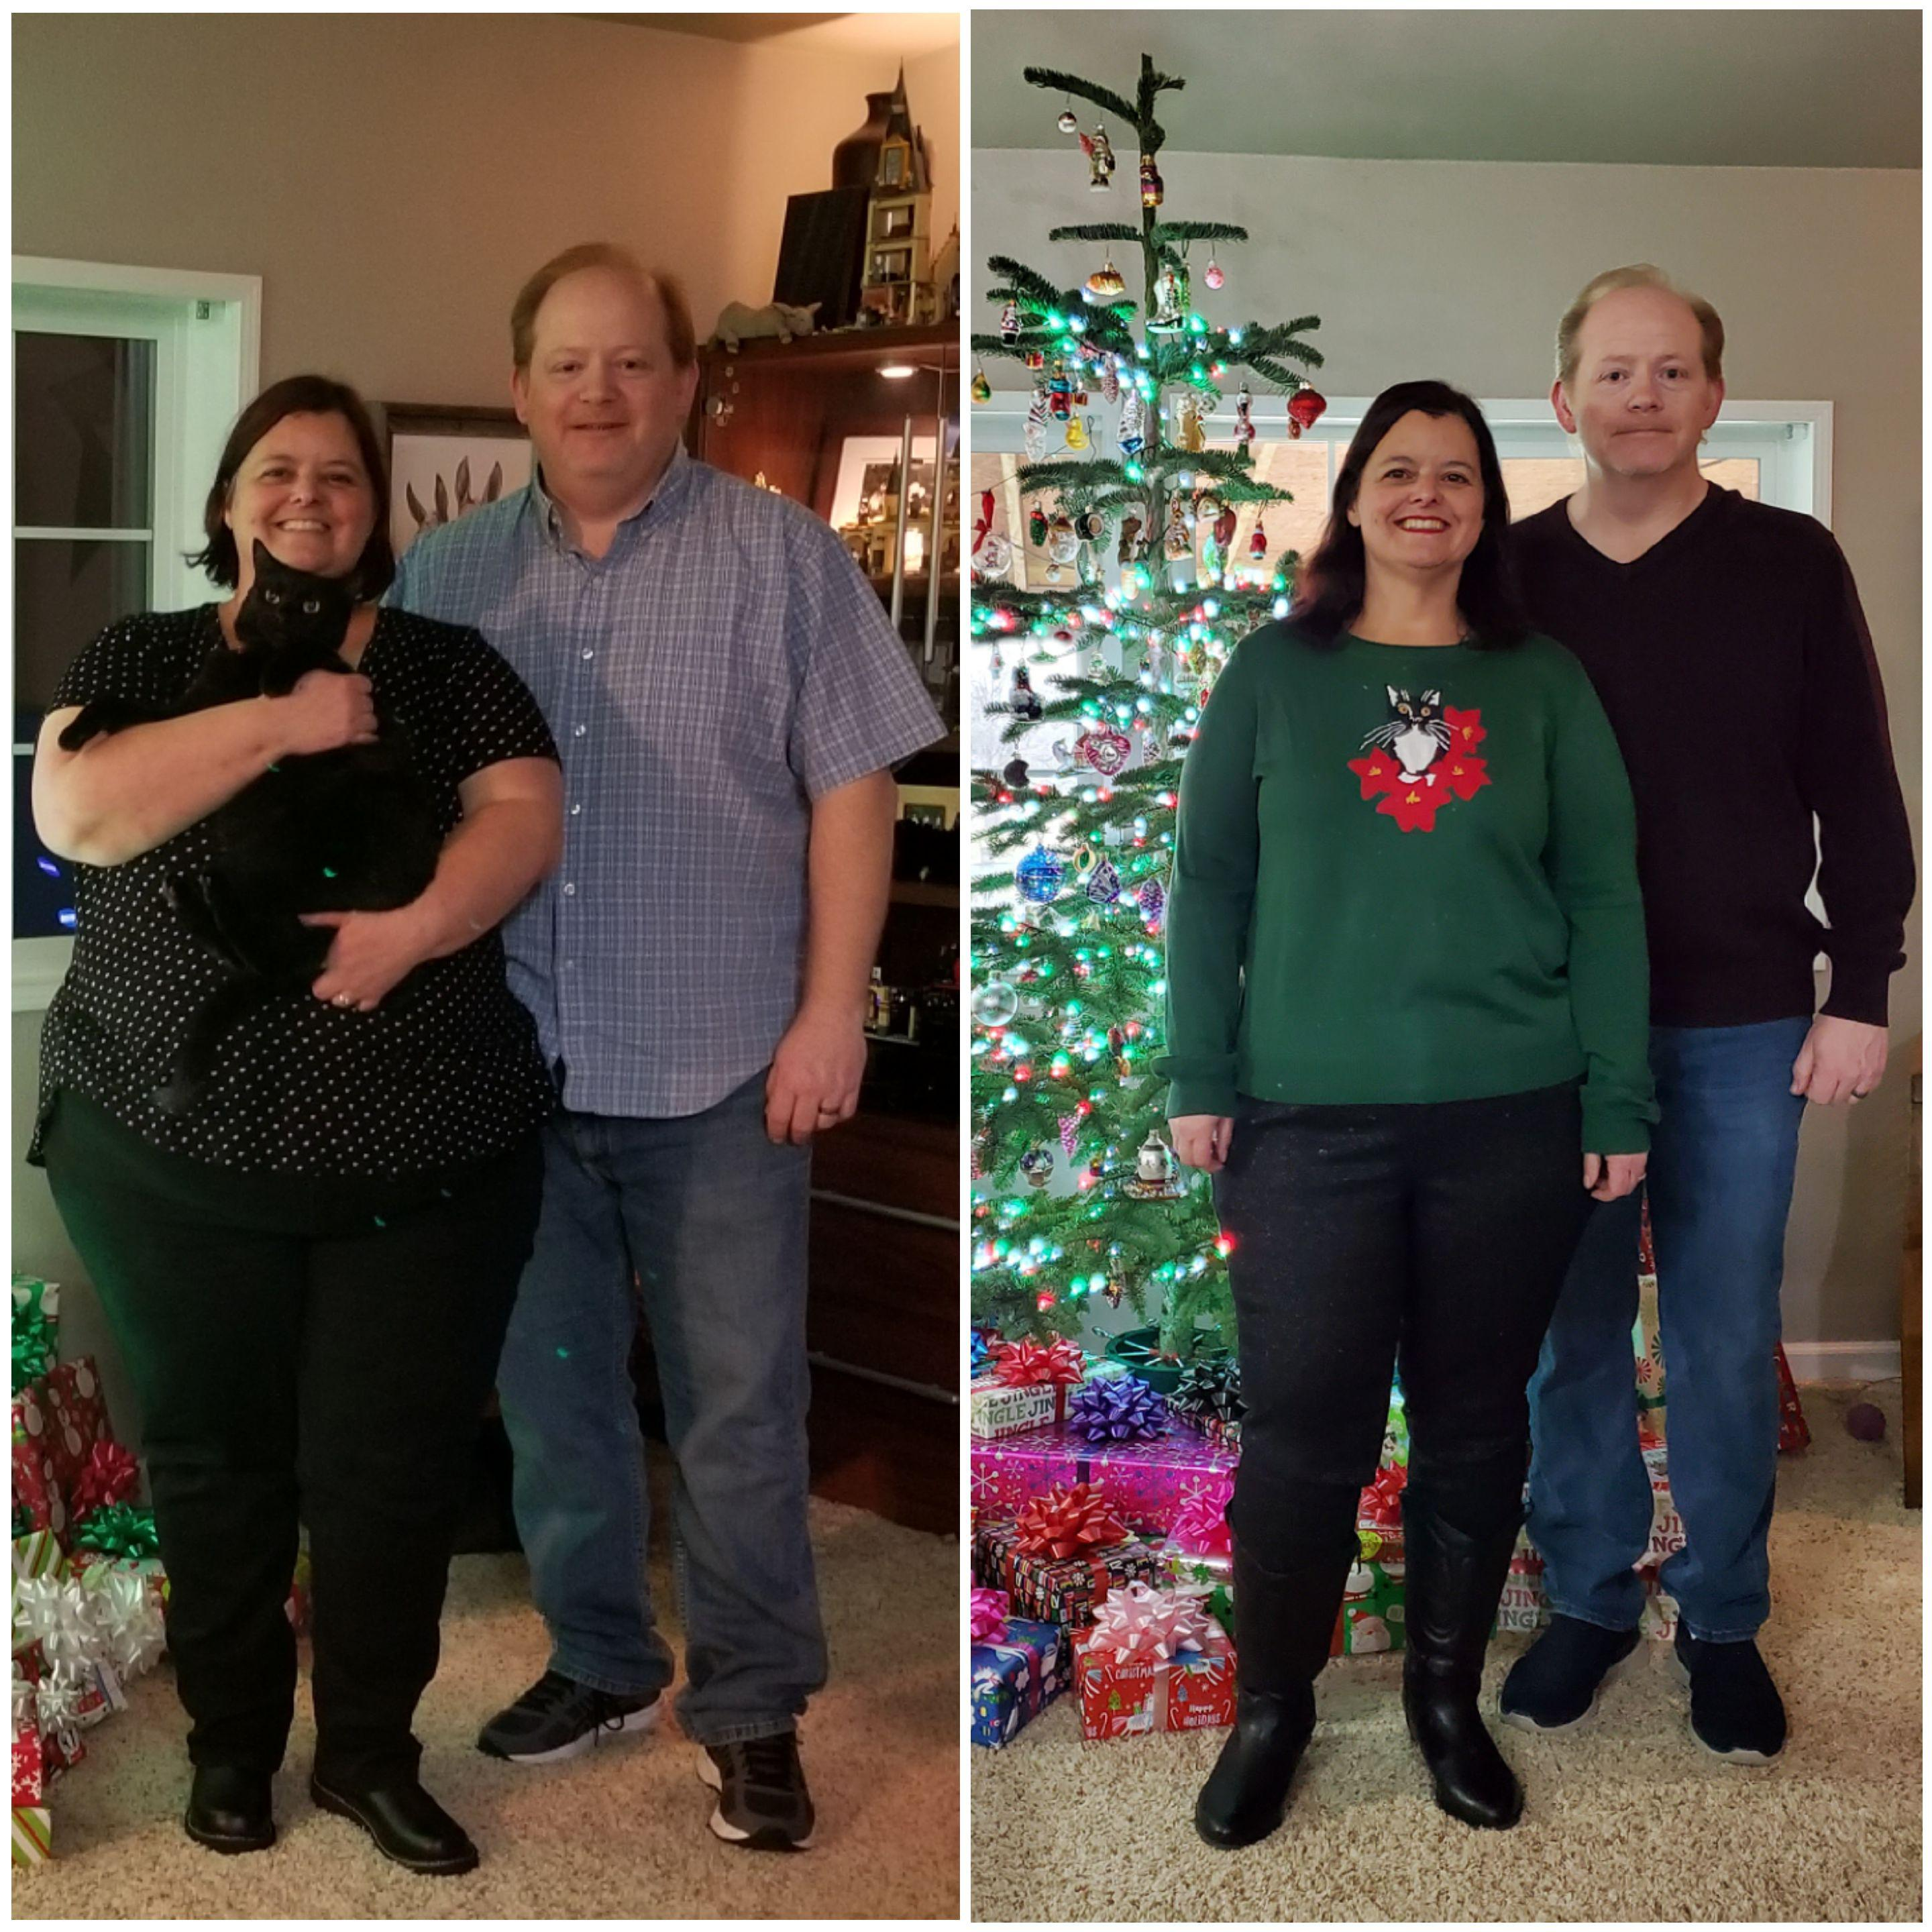 118 lbs Weight Loss Before and After 5'3 Female 316 lbs to 198 lbs